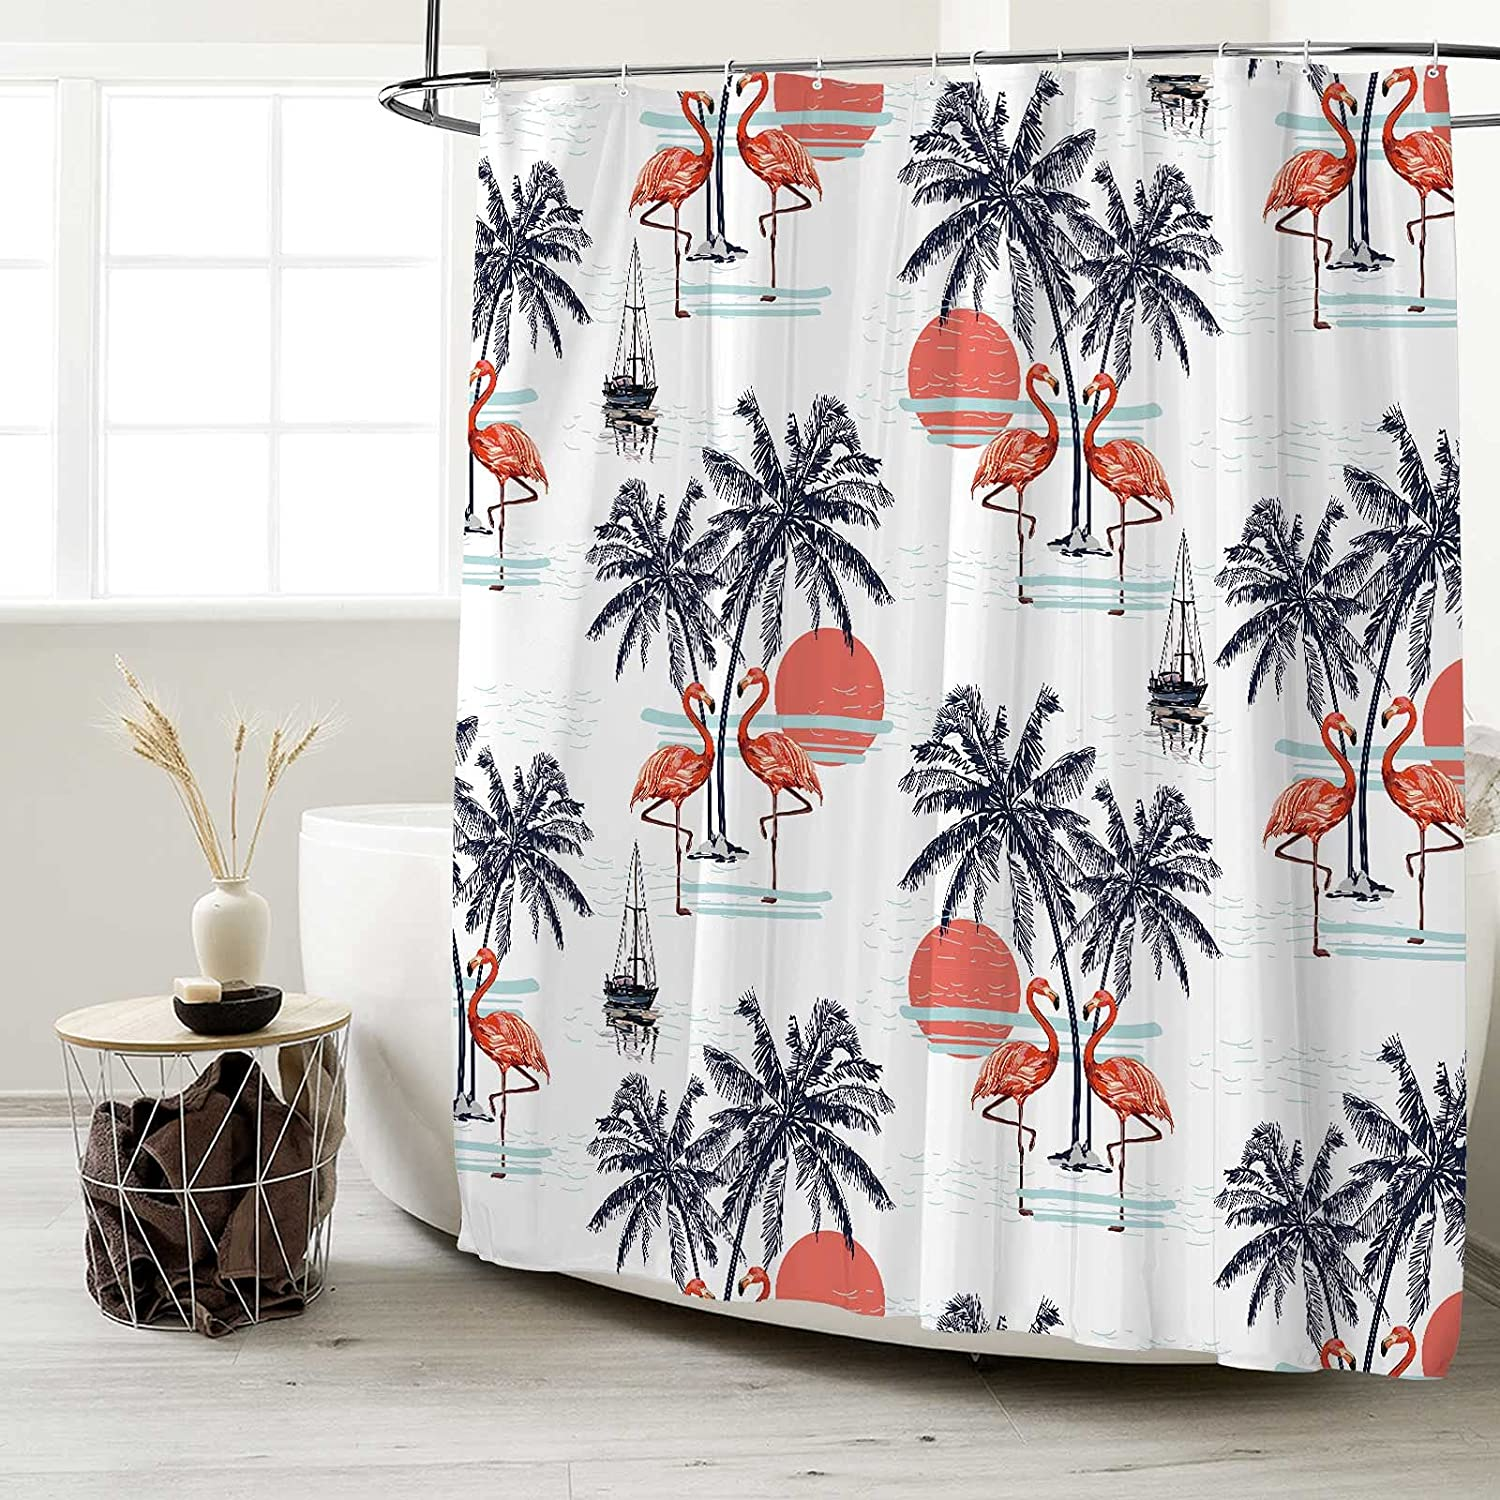 Seasonwood Summer Tropical Flamingo Shower 12 with Curtain Opening large Product release sale H Set